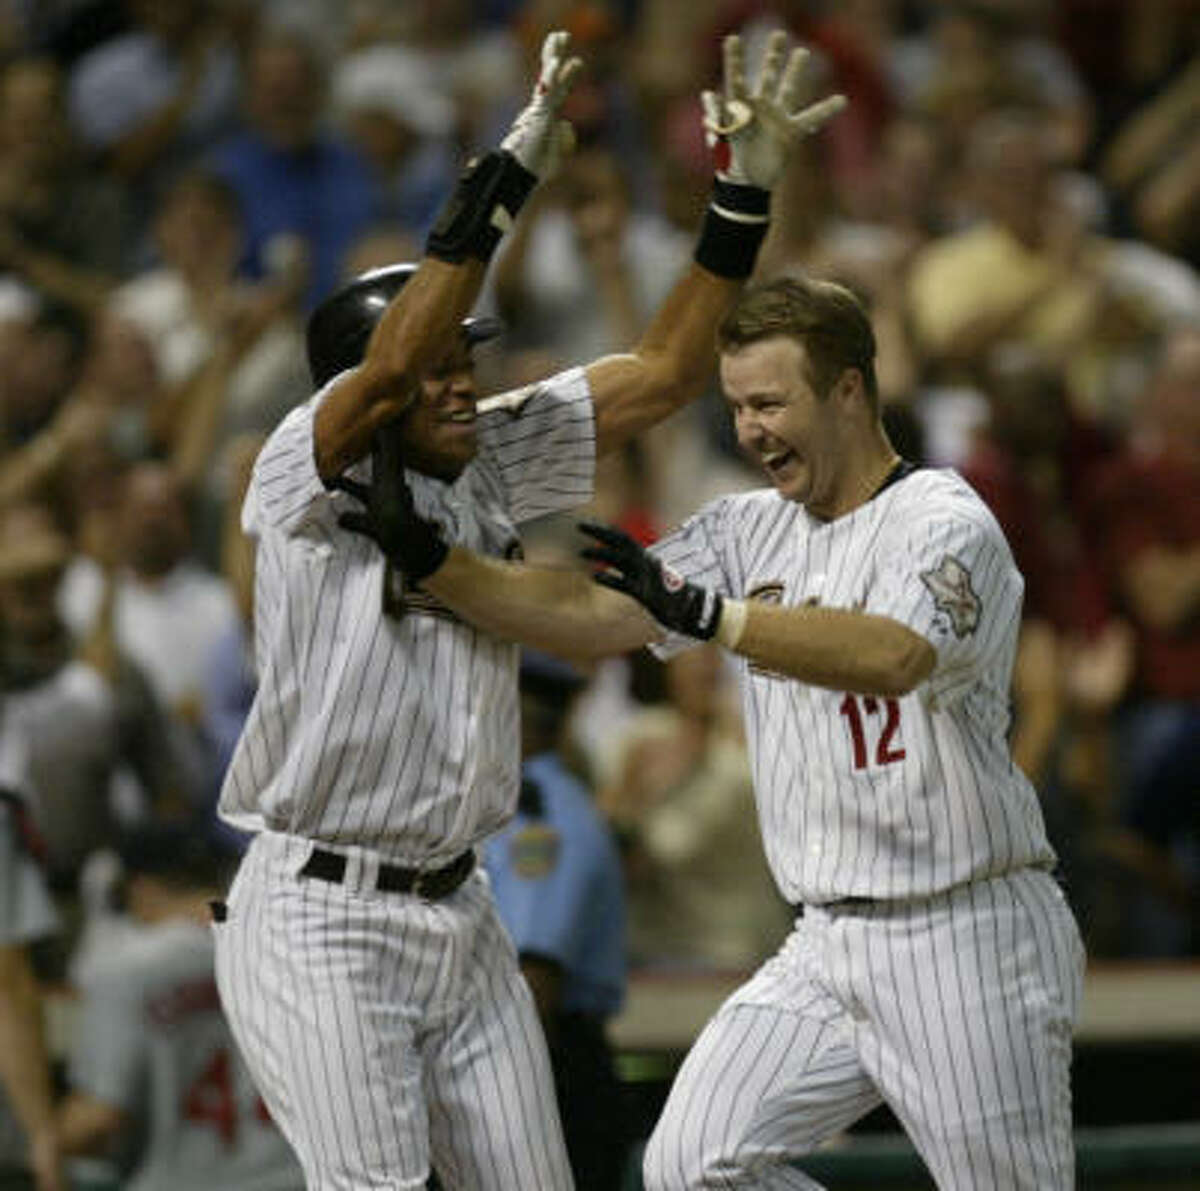 3. Oct. 18, 2004 - Jeff Kent's walk-off homer in the bottom of the ninth breaks a scoreless tie and gives the Astros a 3-0 victory over St. Louis in Game 5 of the NL Championship series. The Astros, however, lose the final two games in St. Louis and fall short of their first World Series berth.